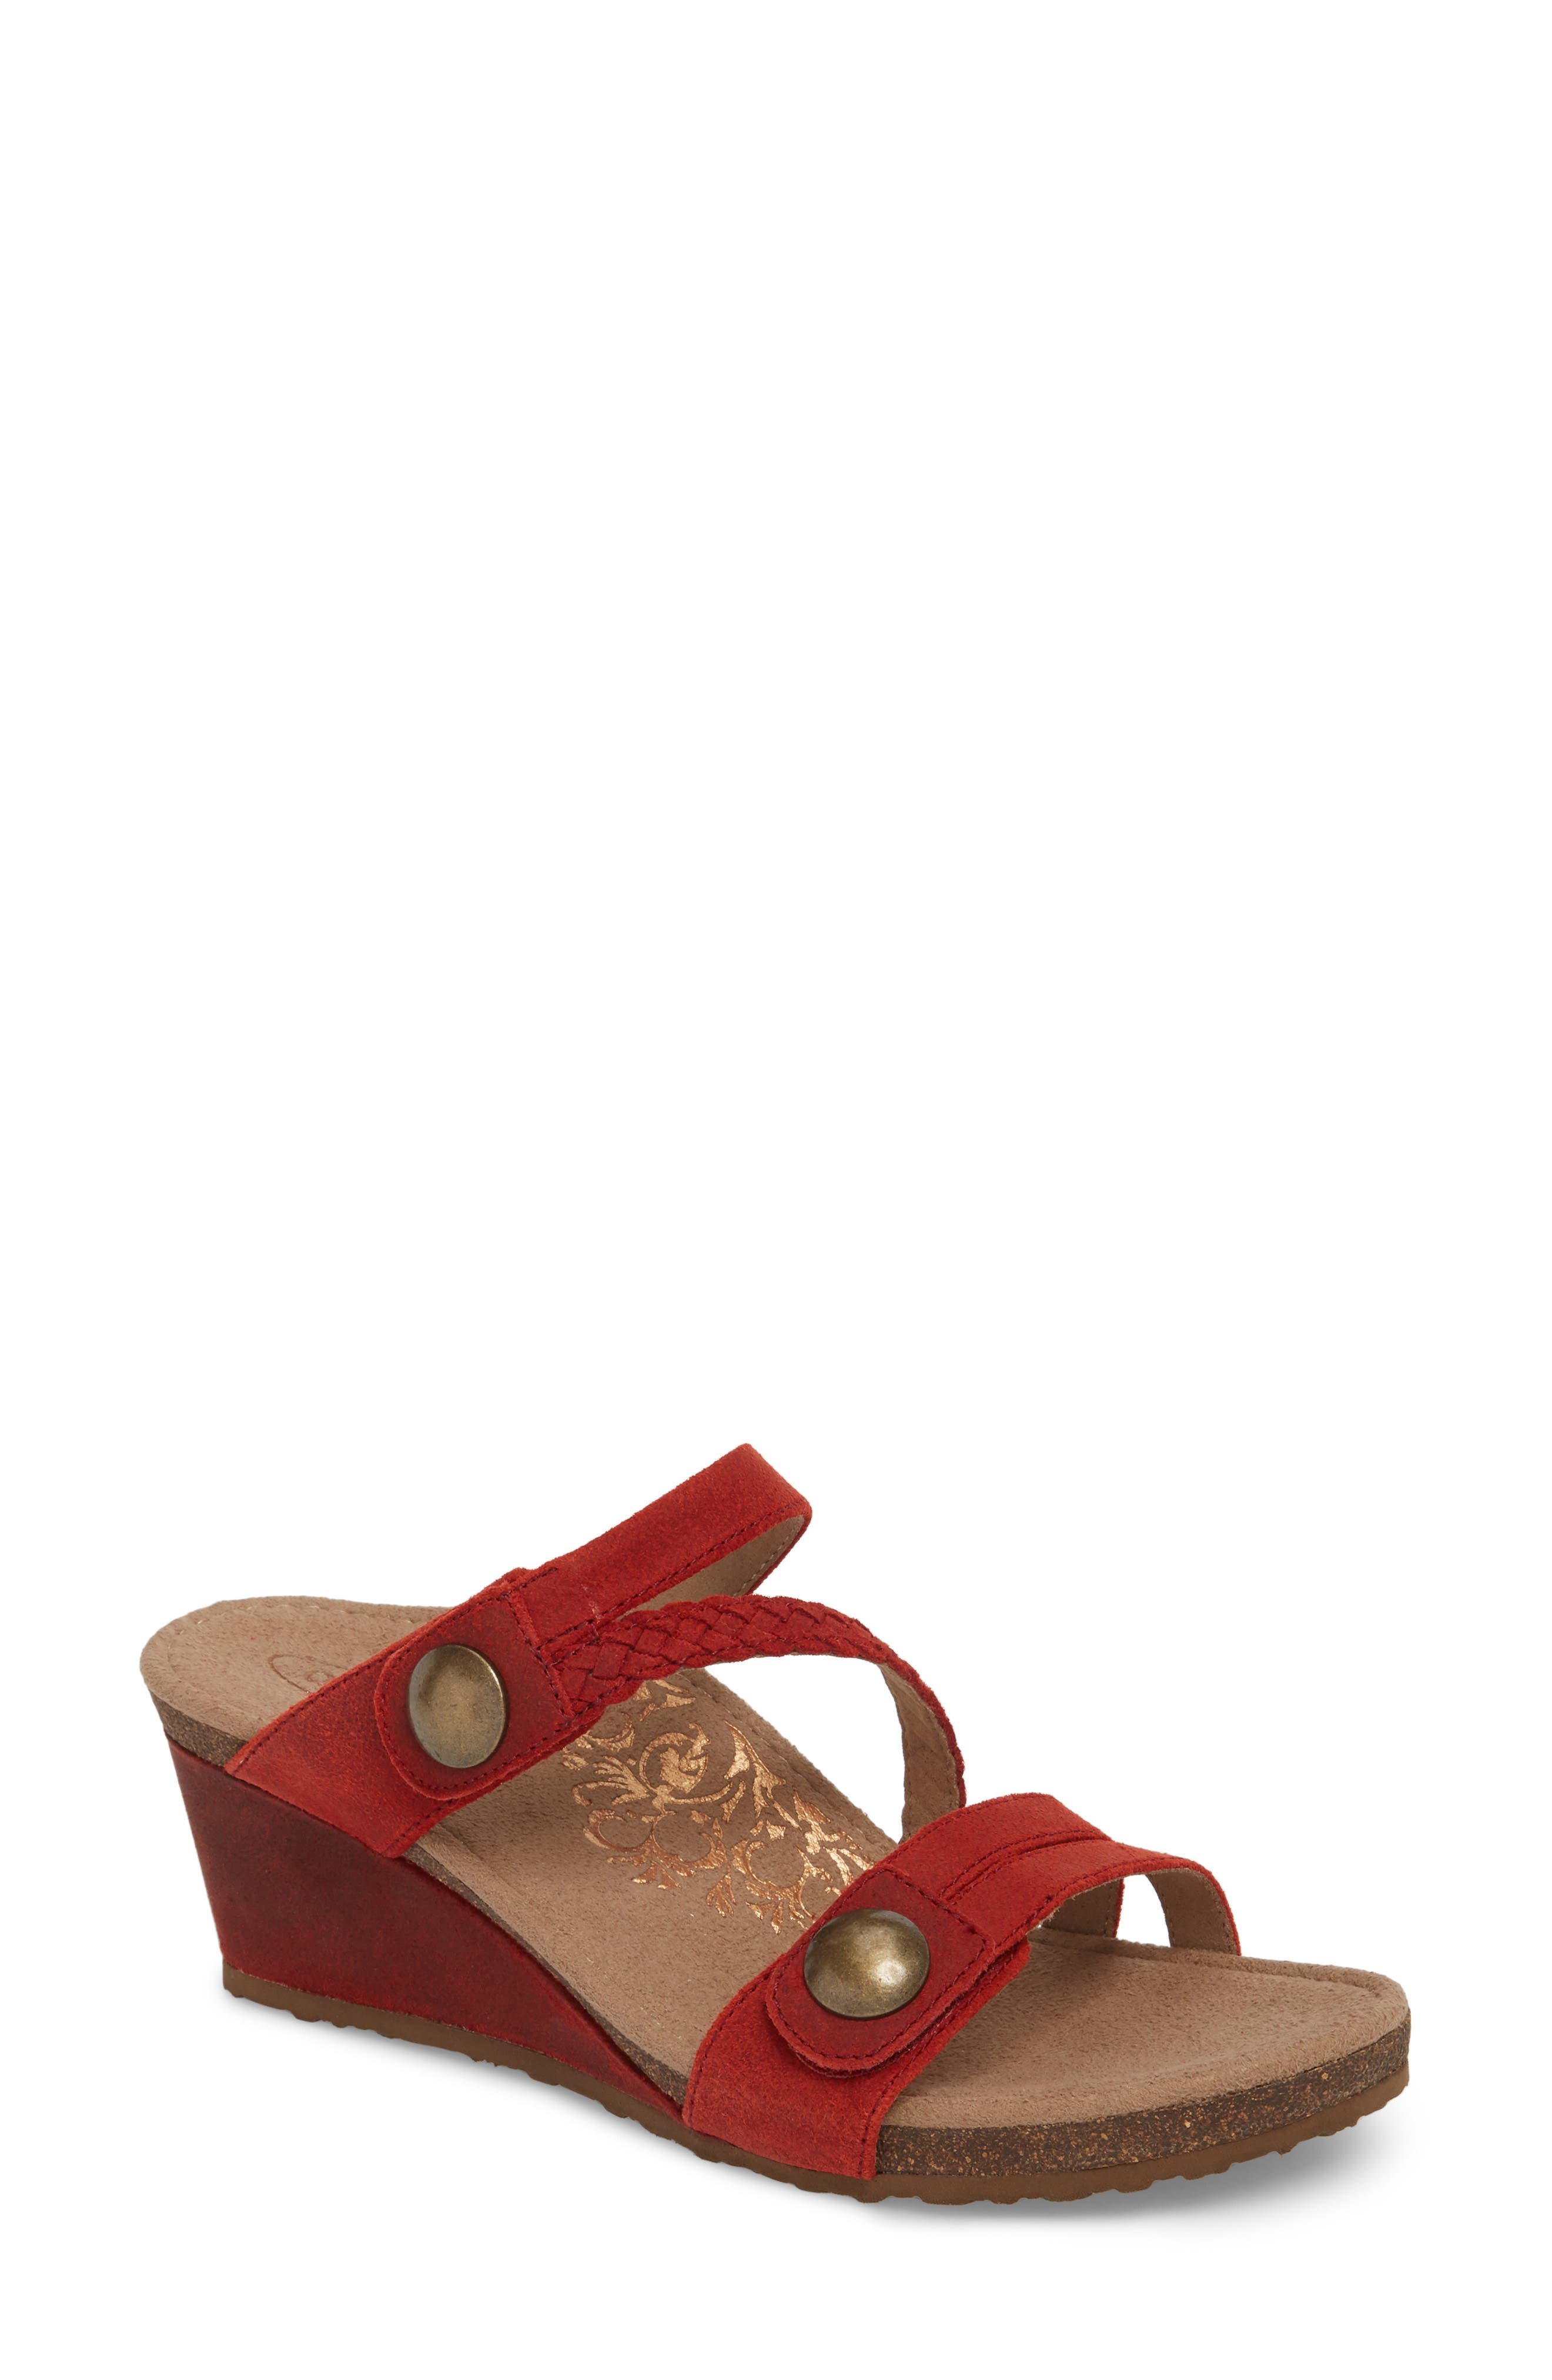 Lydia Strappy Wedge Sandal,                             Main thumbnail 1, color,                             Cayenne Leather